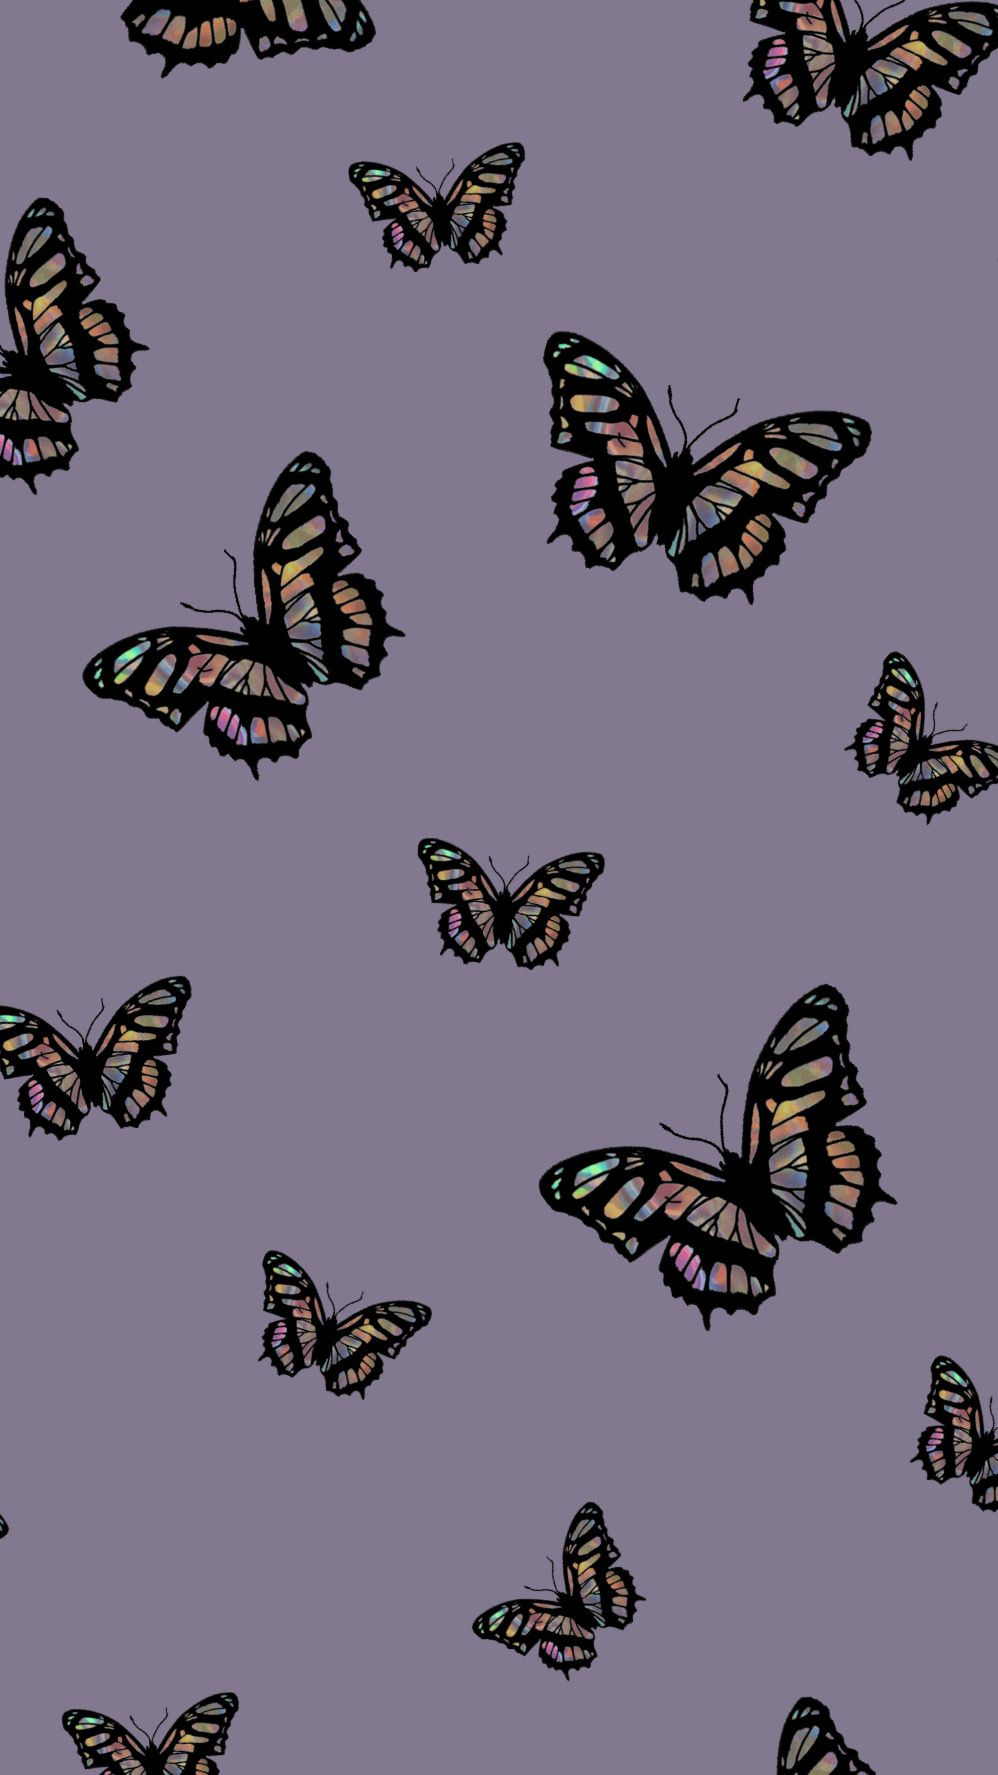 Pastel Butterfly Iphone Wallpaper Tumblr